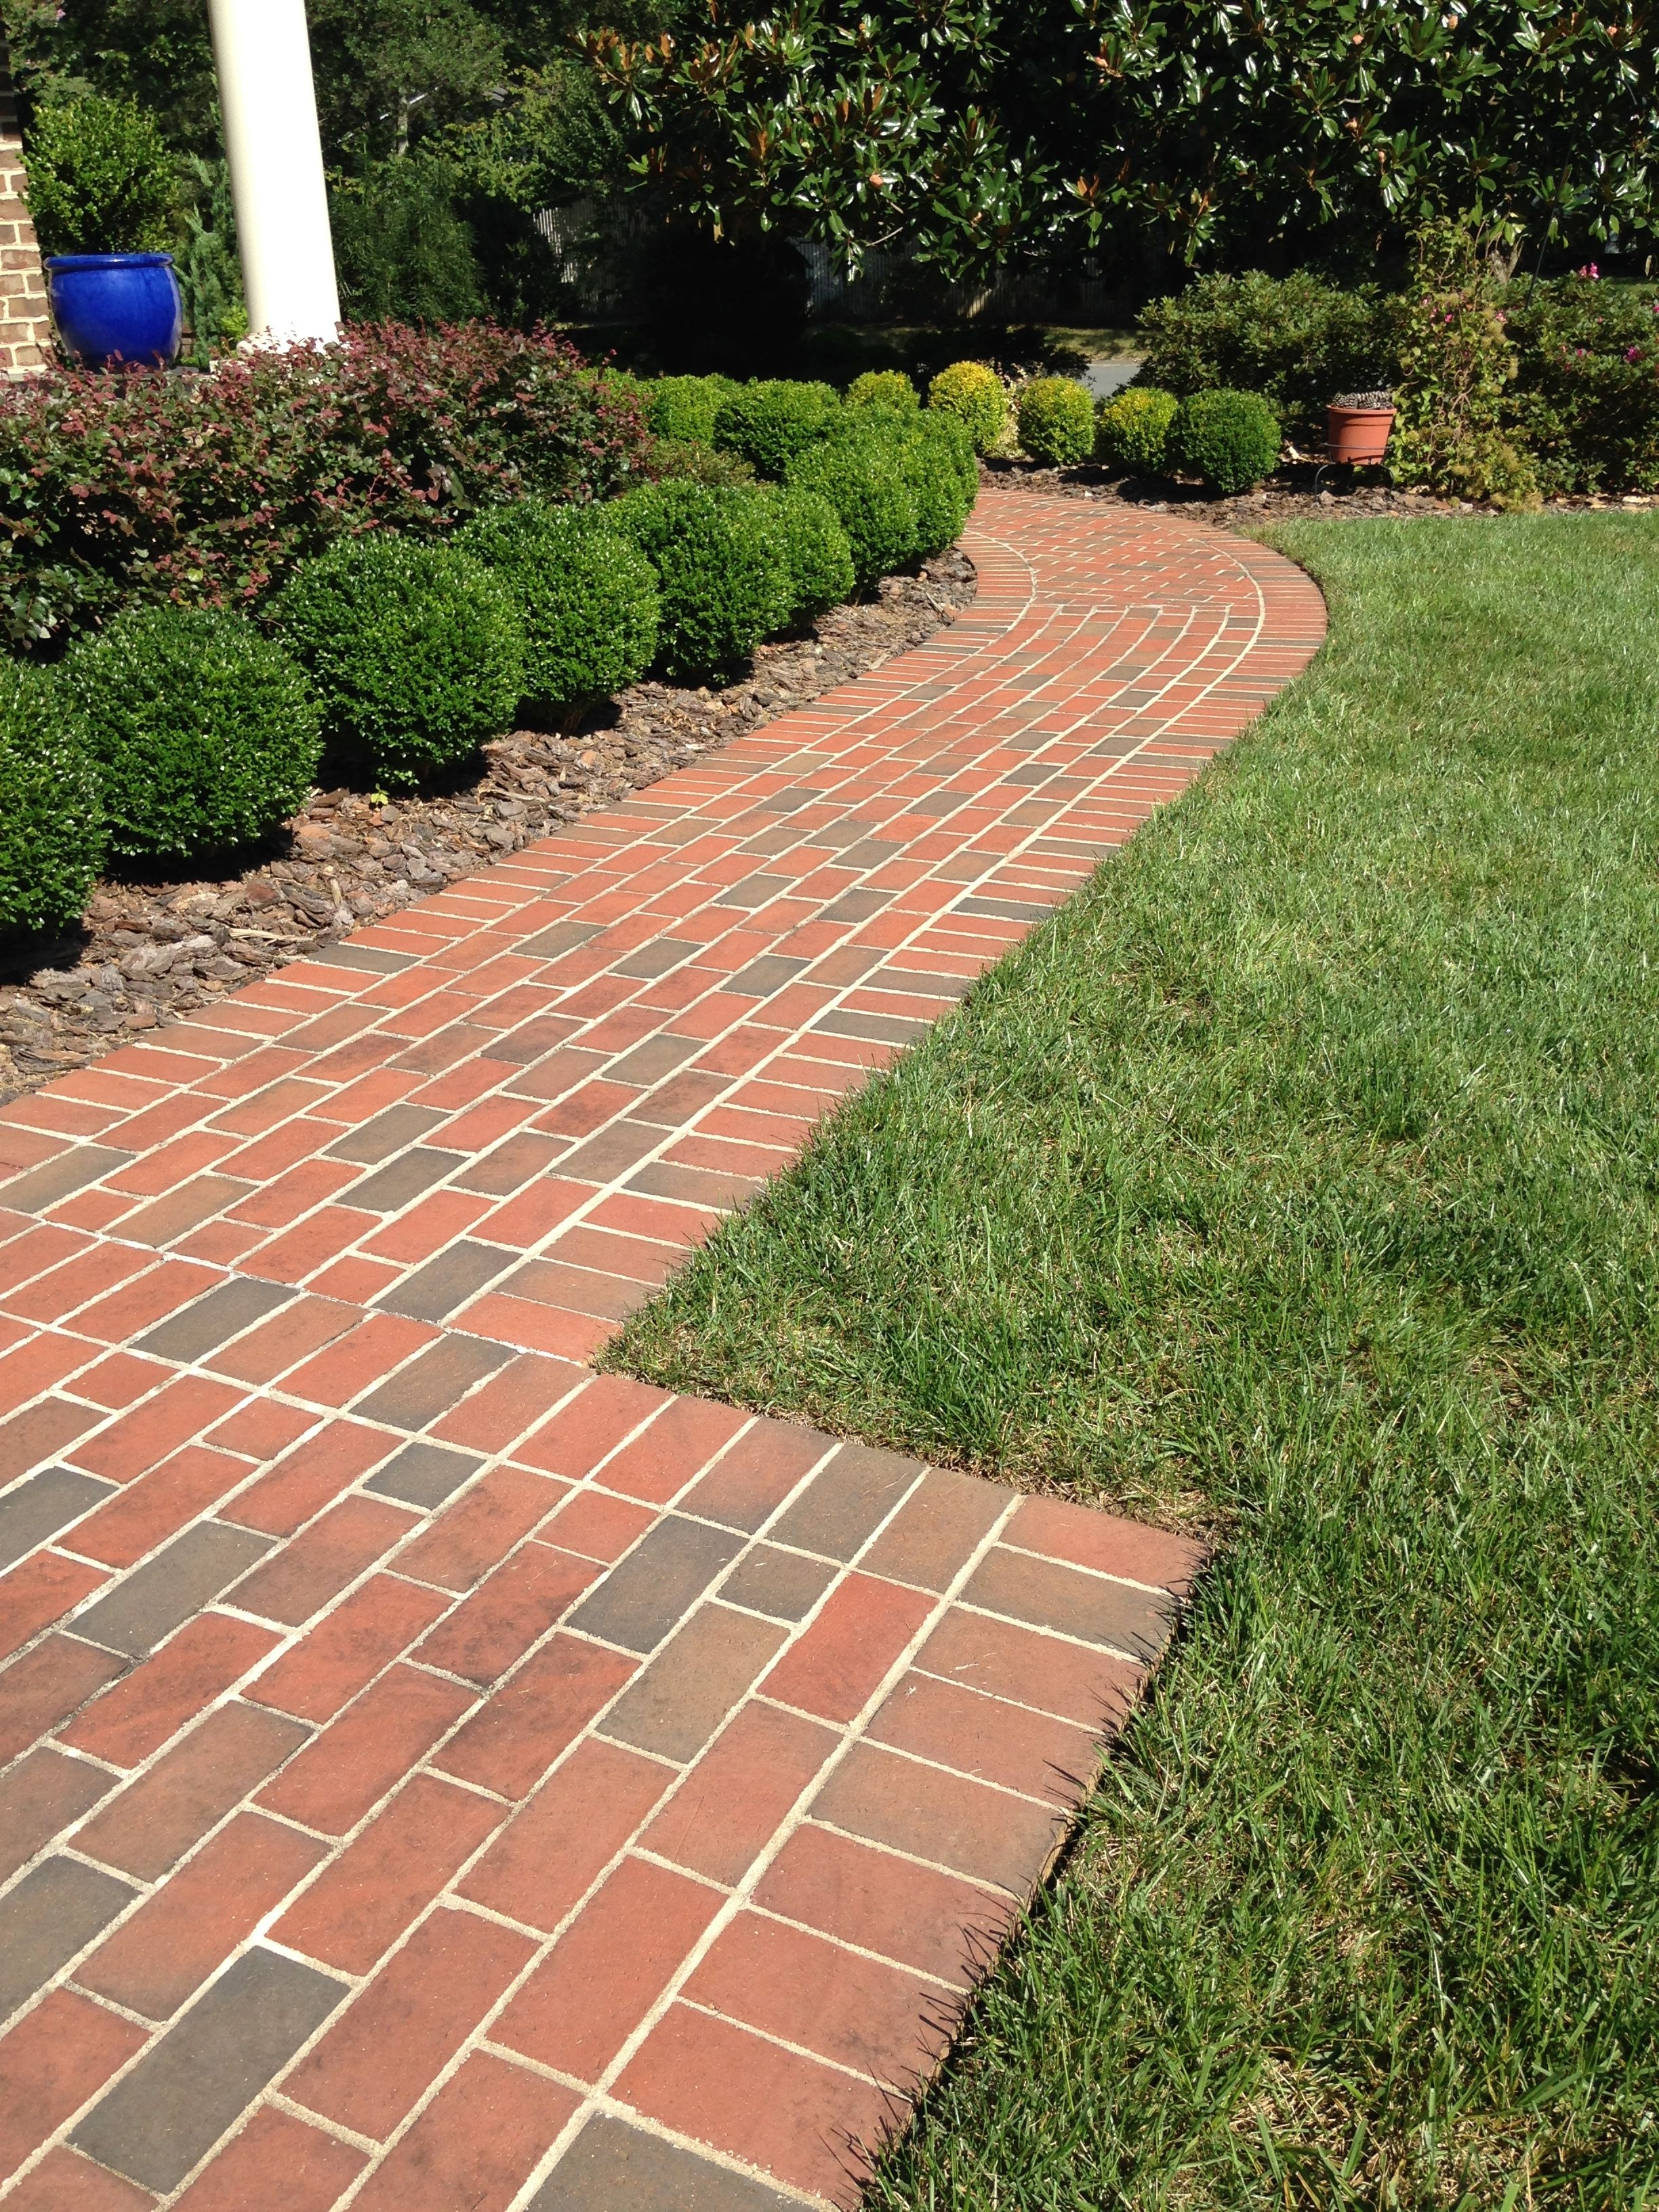 Landscape Your Yard With Brick Paths And Patios With Curves And Straight Lines Shown Here Pathway Full Range Pavers Brick Path Front Yard Paver Walkway